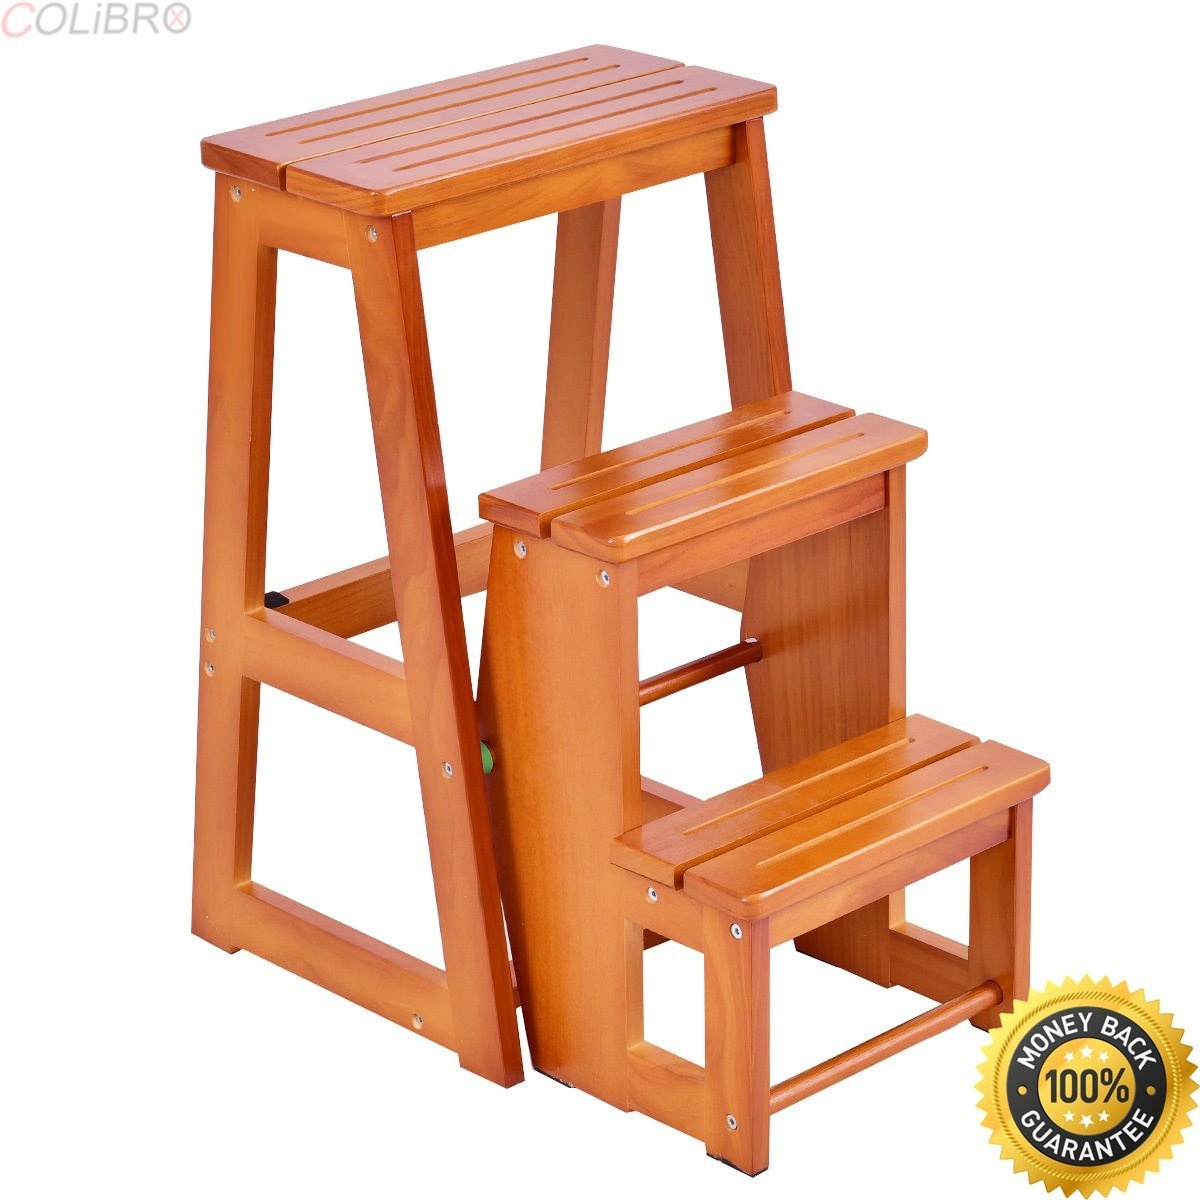 Colibrox wood step stool folding 3 tier ladder chair bench seat utility multi functional chair bench for sale wooden step stools for the kitchen